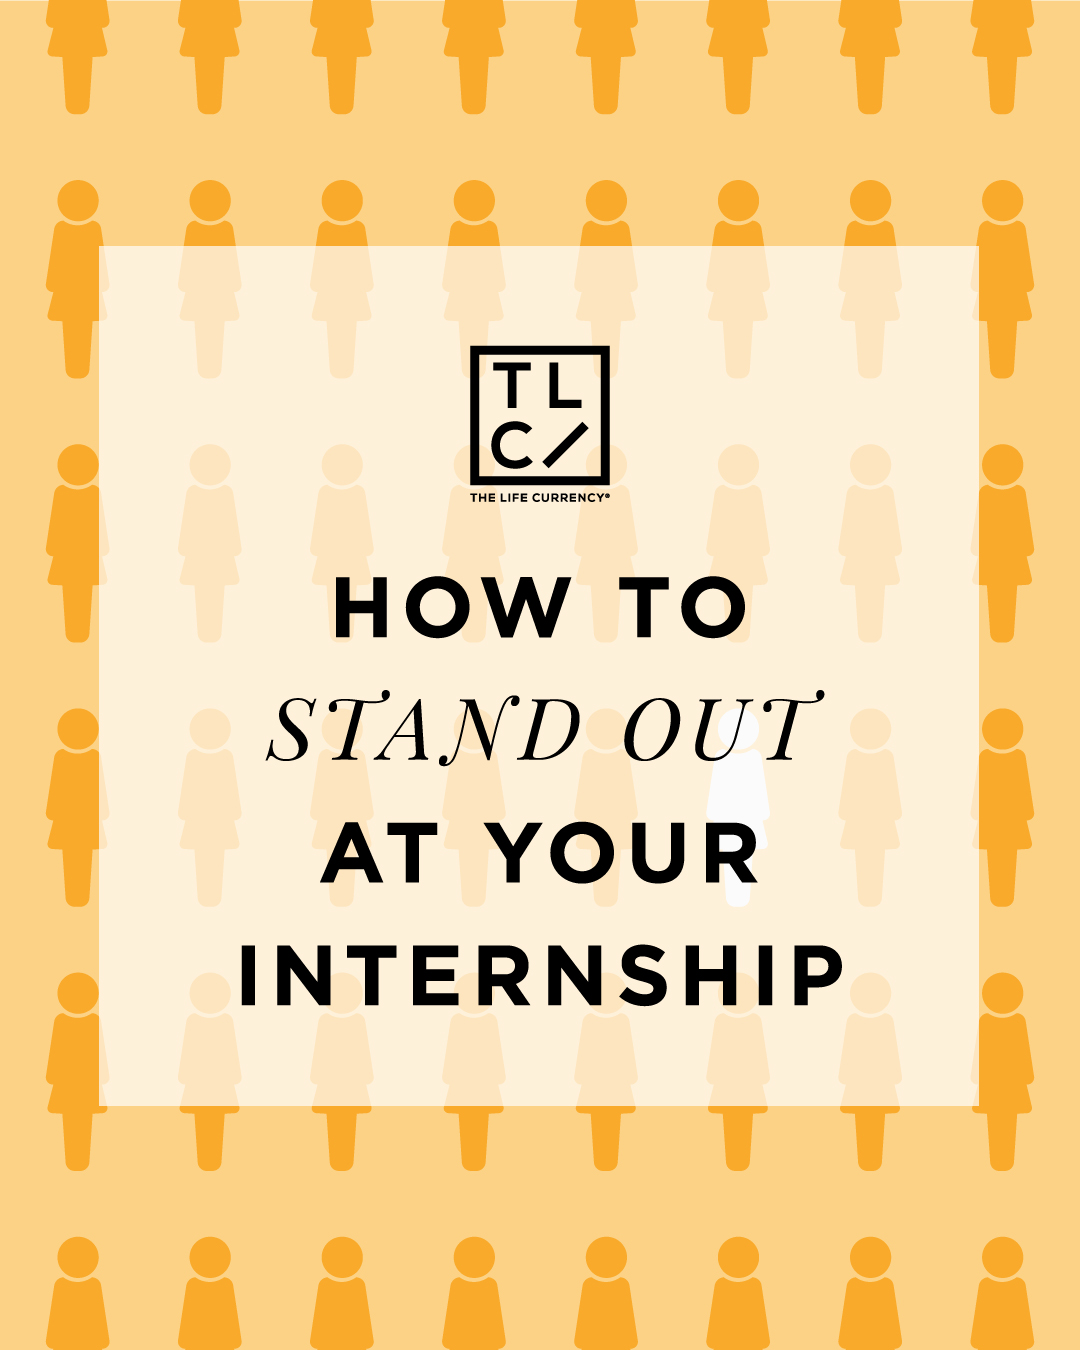 How to Stand out at Your Internship